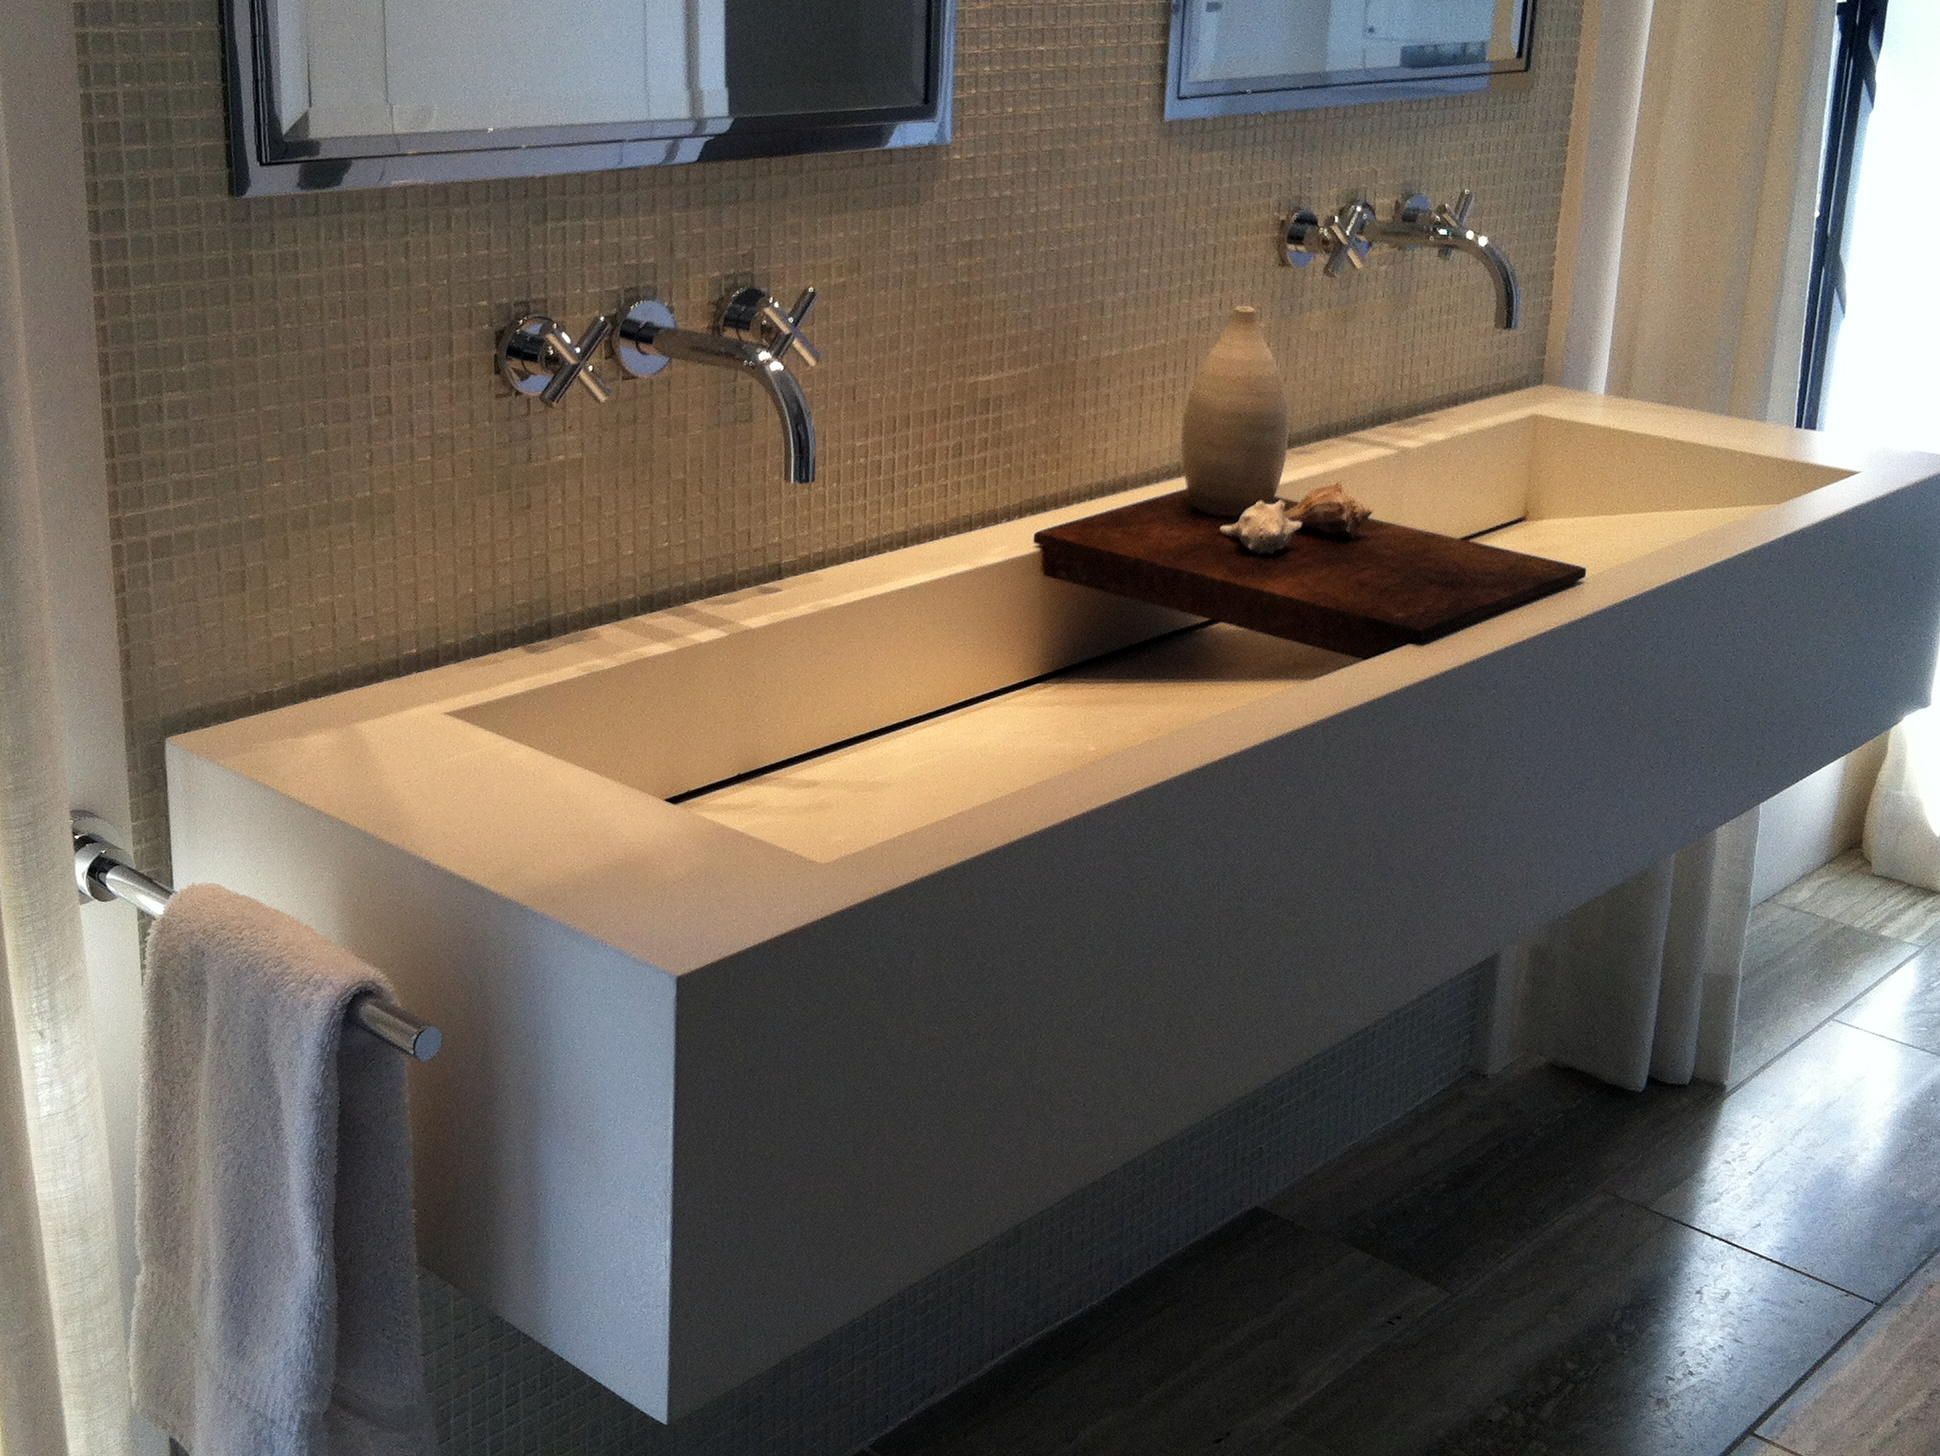 Best Ramp Sinks Images Onconcrete Sink Bathroom